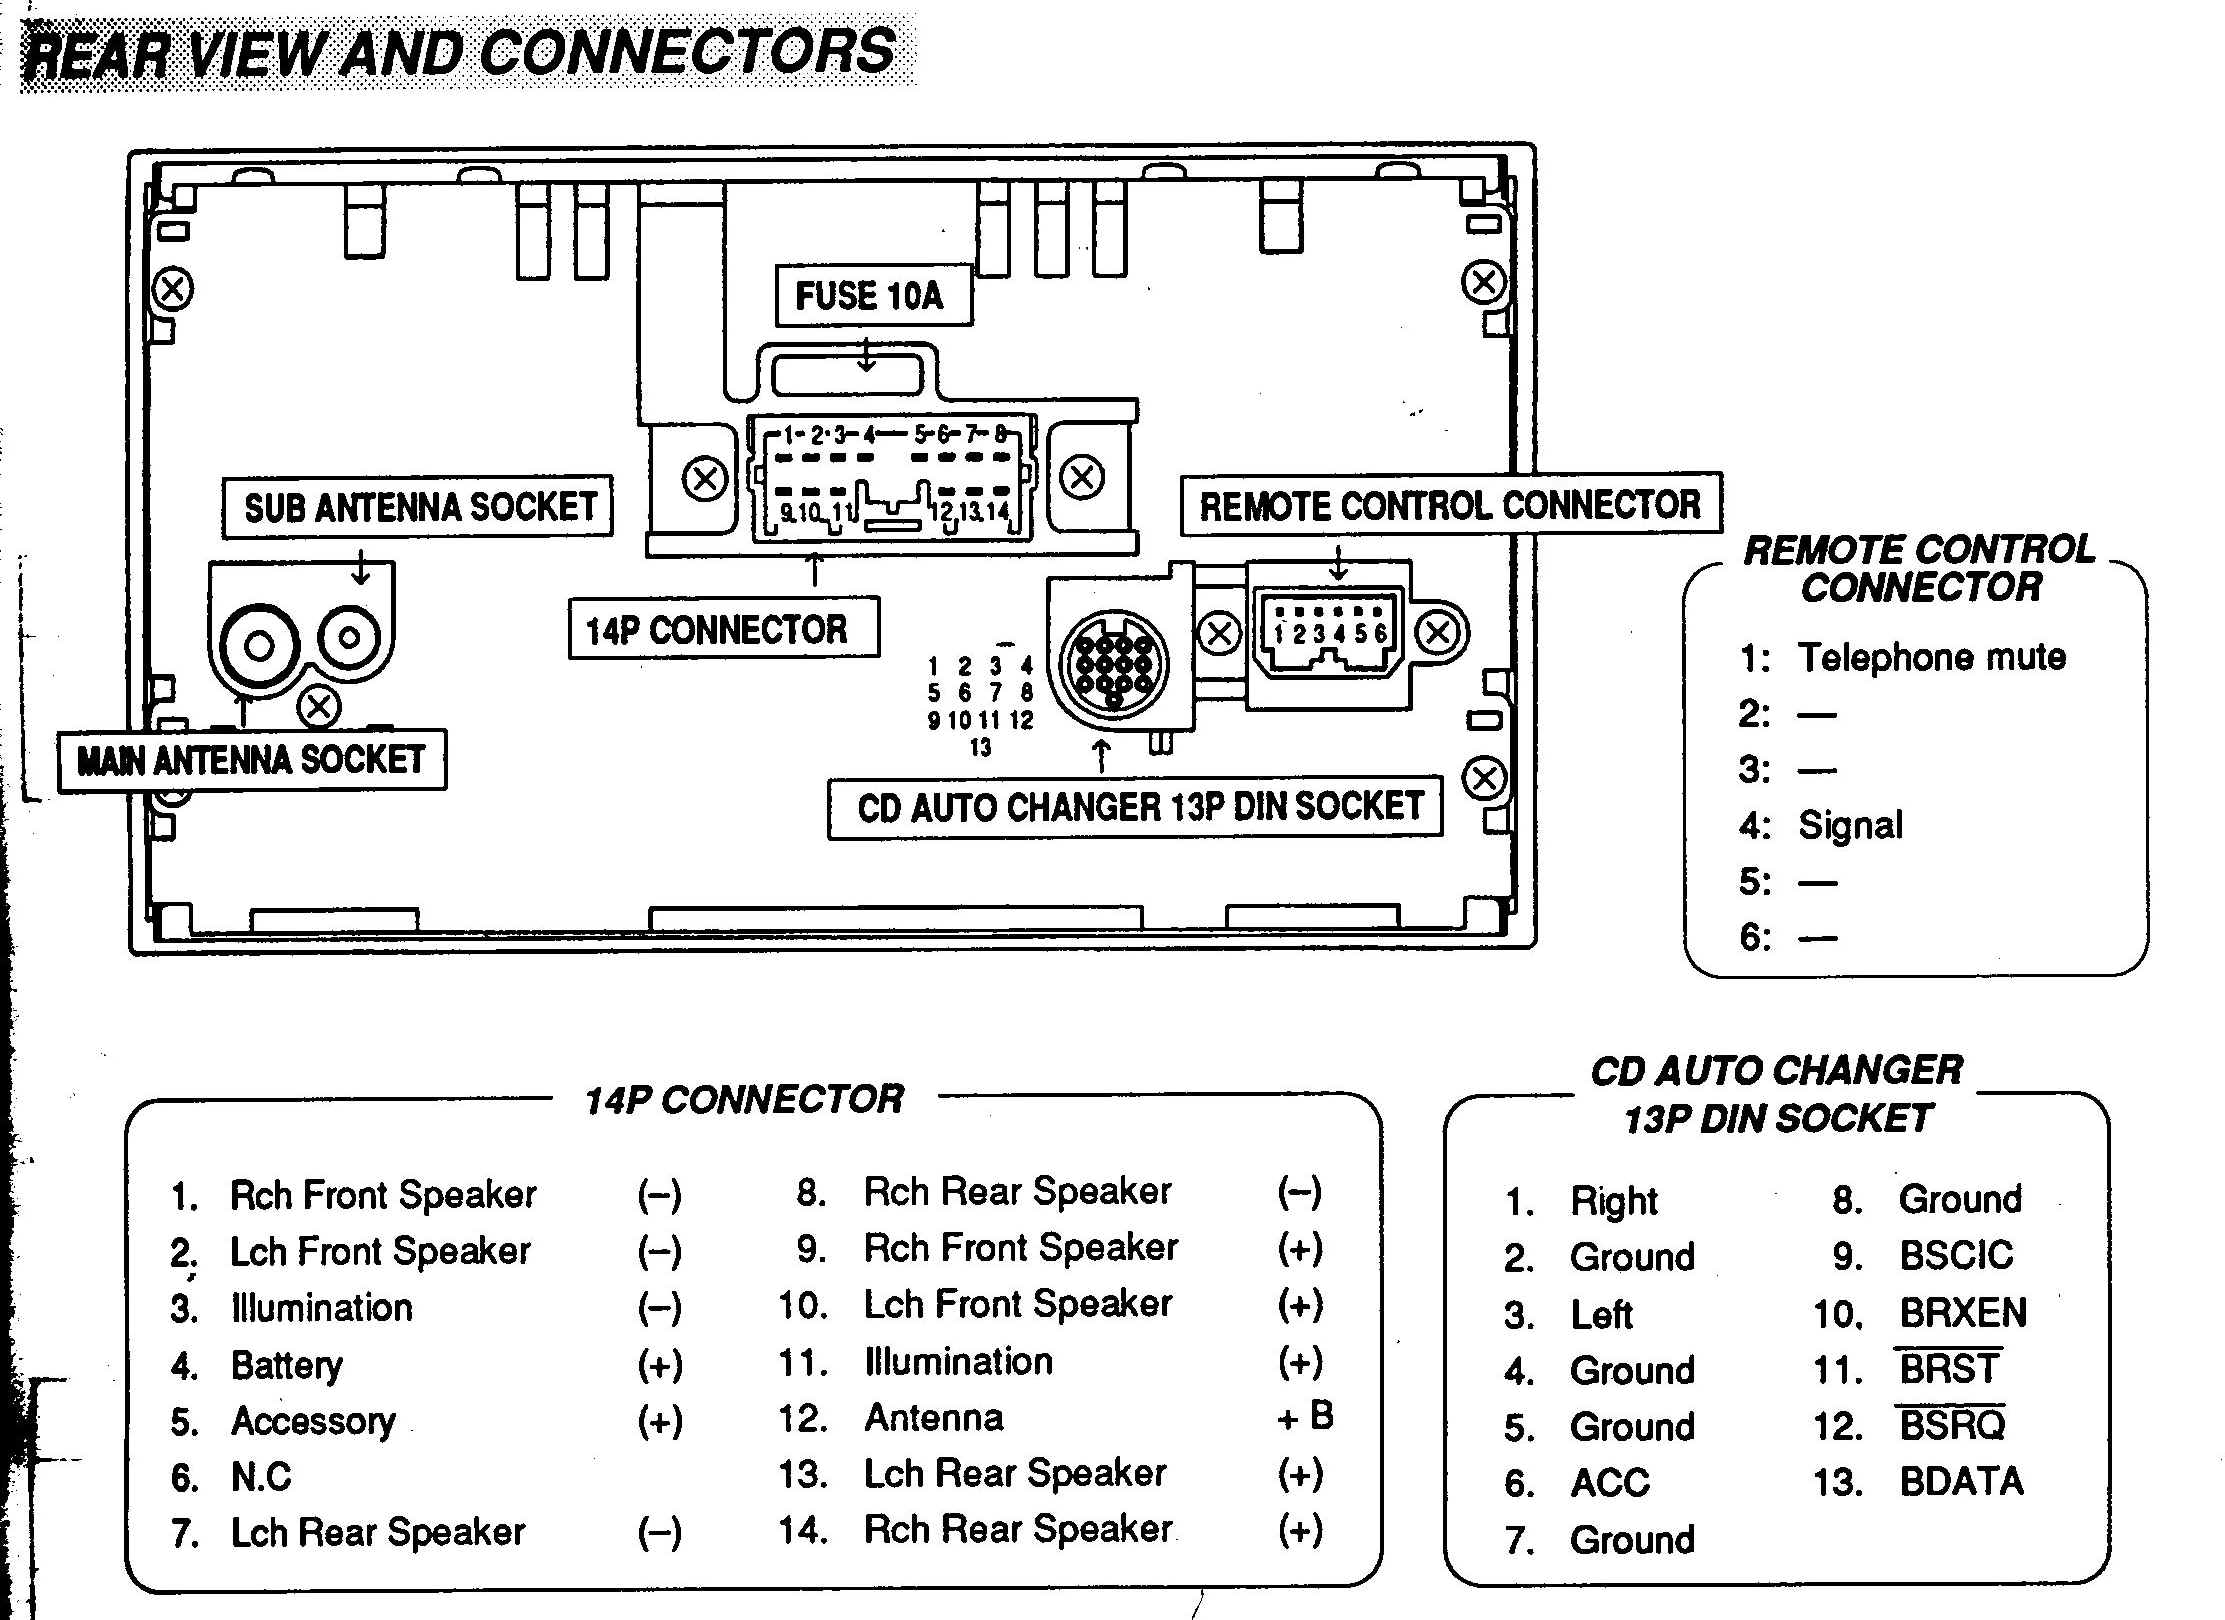 WireHarnessMit121003 car audio wire diagram codes mitsubishi factory car stereo 3 speaker wiring diagram at virtualis.co